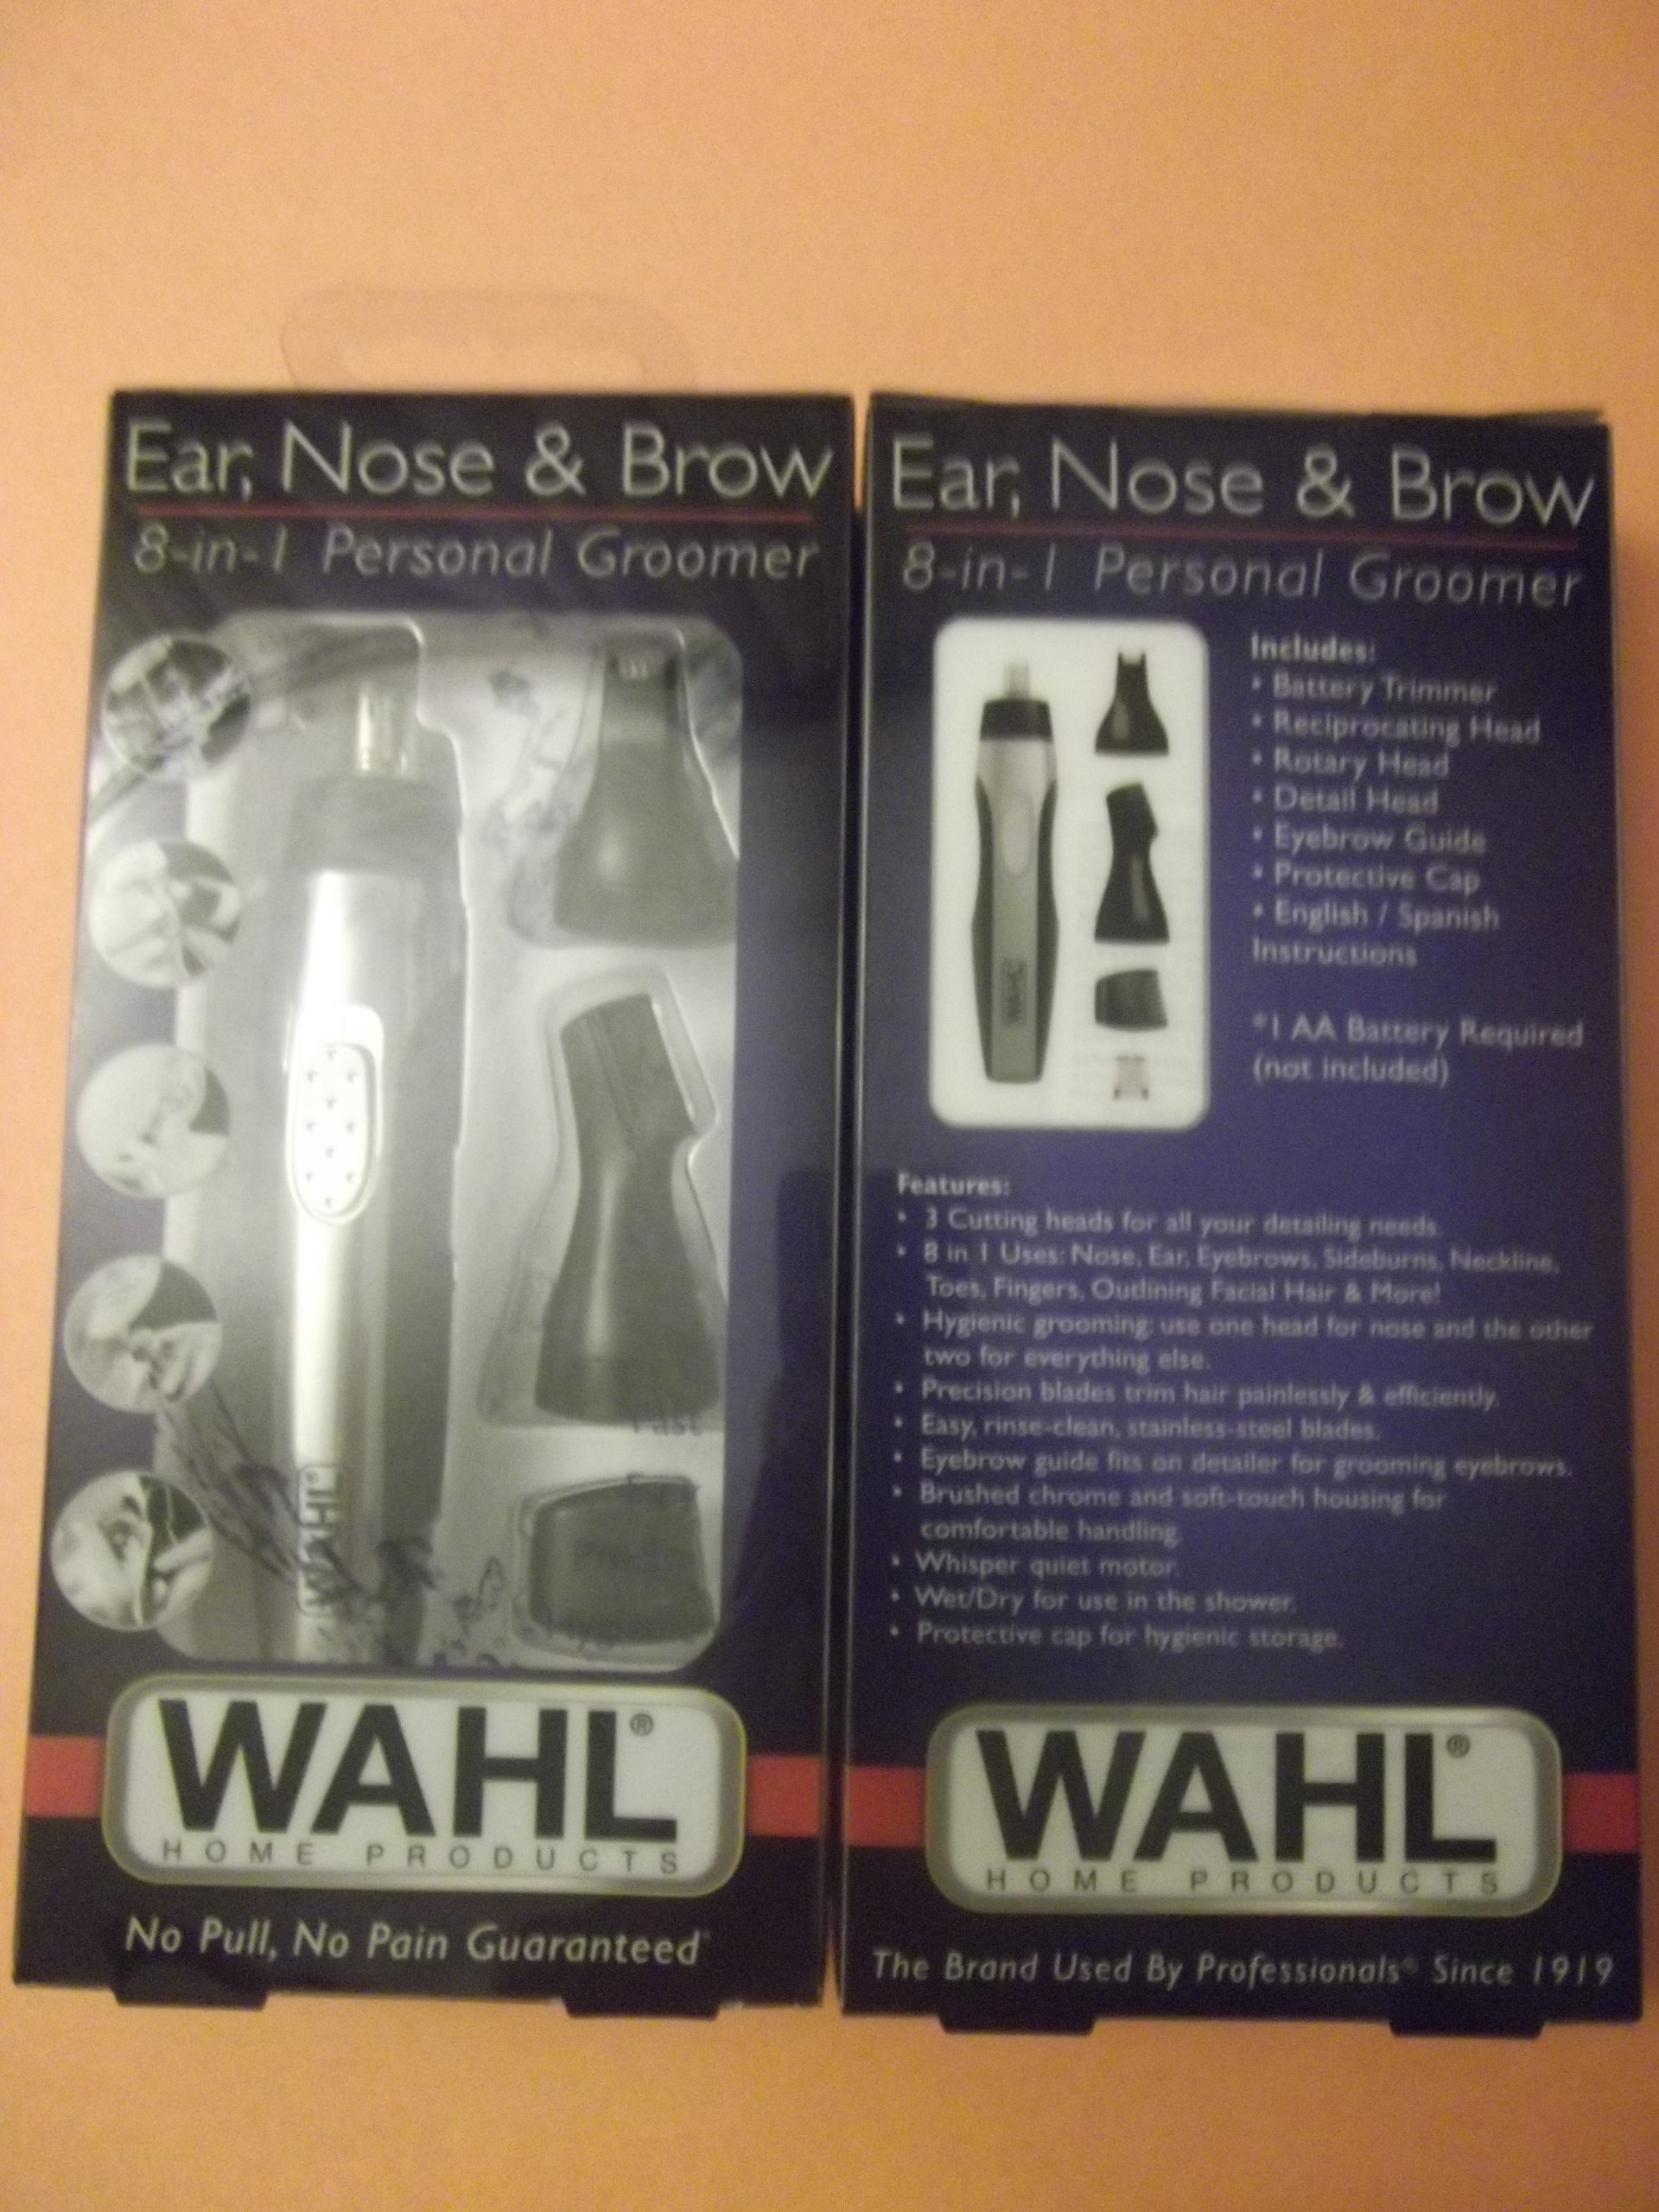 Wahl Ear, Nose & Brow 8-in-1 Personal Groomer